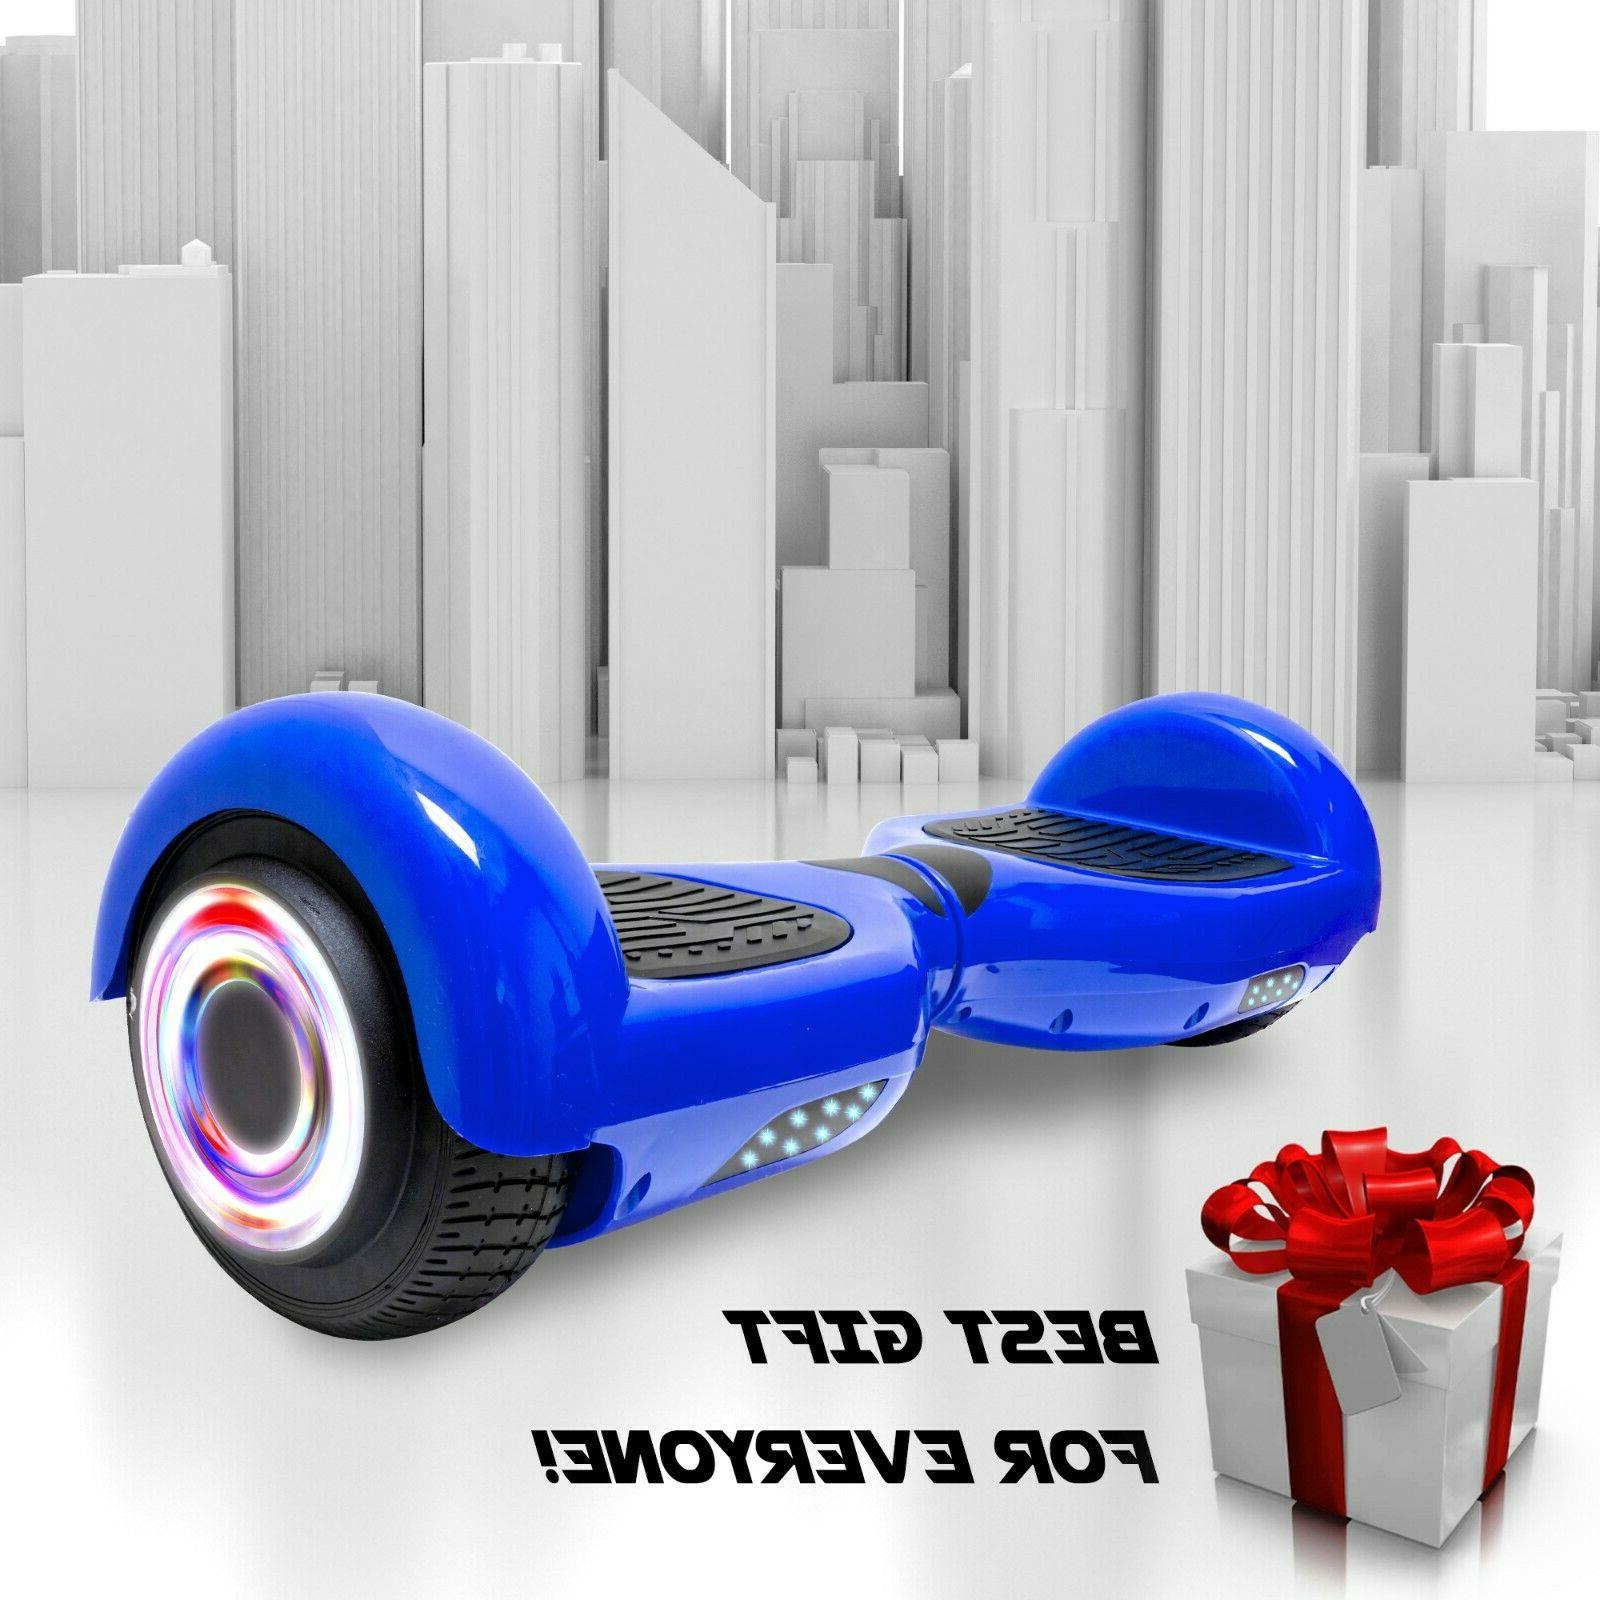 NHT Two Wheels Hoverboard LED Self Balancing Design